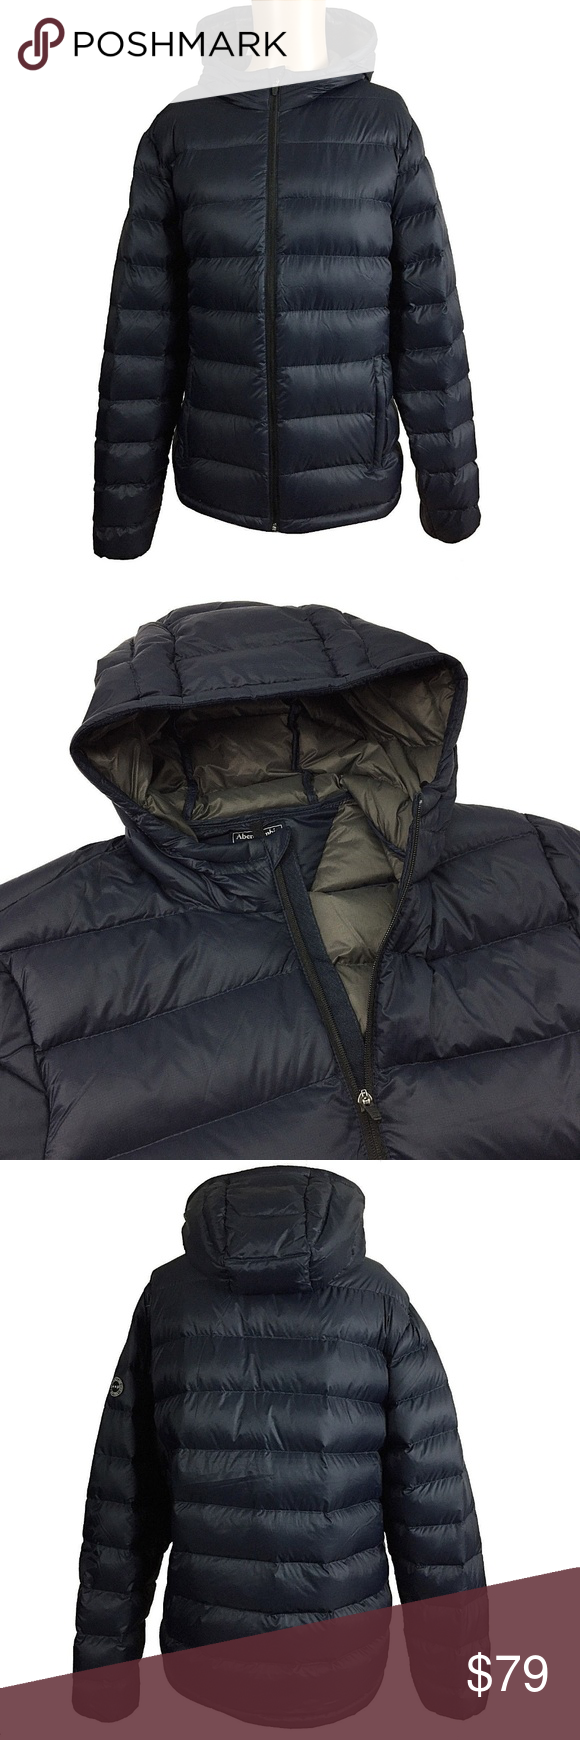 Abercrombie Fitch Down Filled Puffer Jacket New Without Tags Abercrombie Fitch Down Filled Puffer Jack Abercrombie And Fitch Jackets Jackets Puffer Jackets [ 1740 x 580 Pixel ]